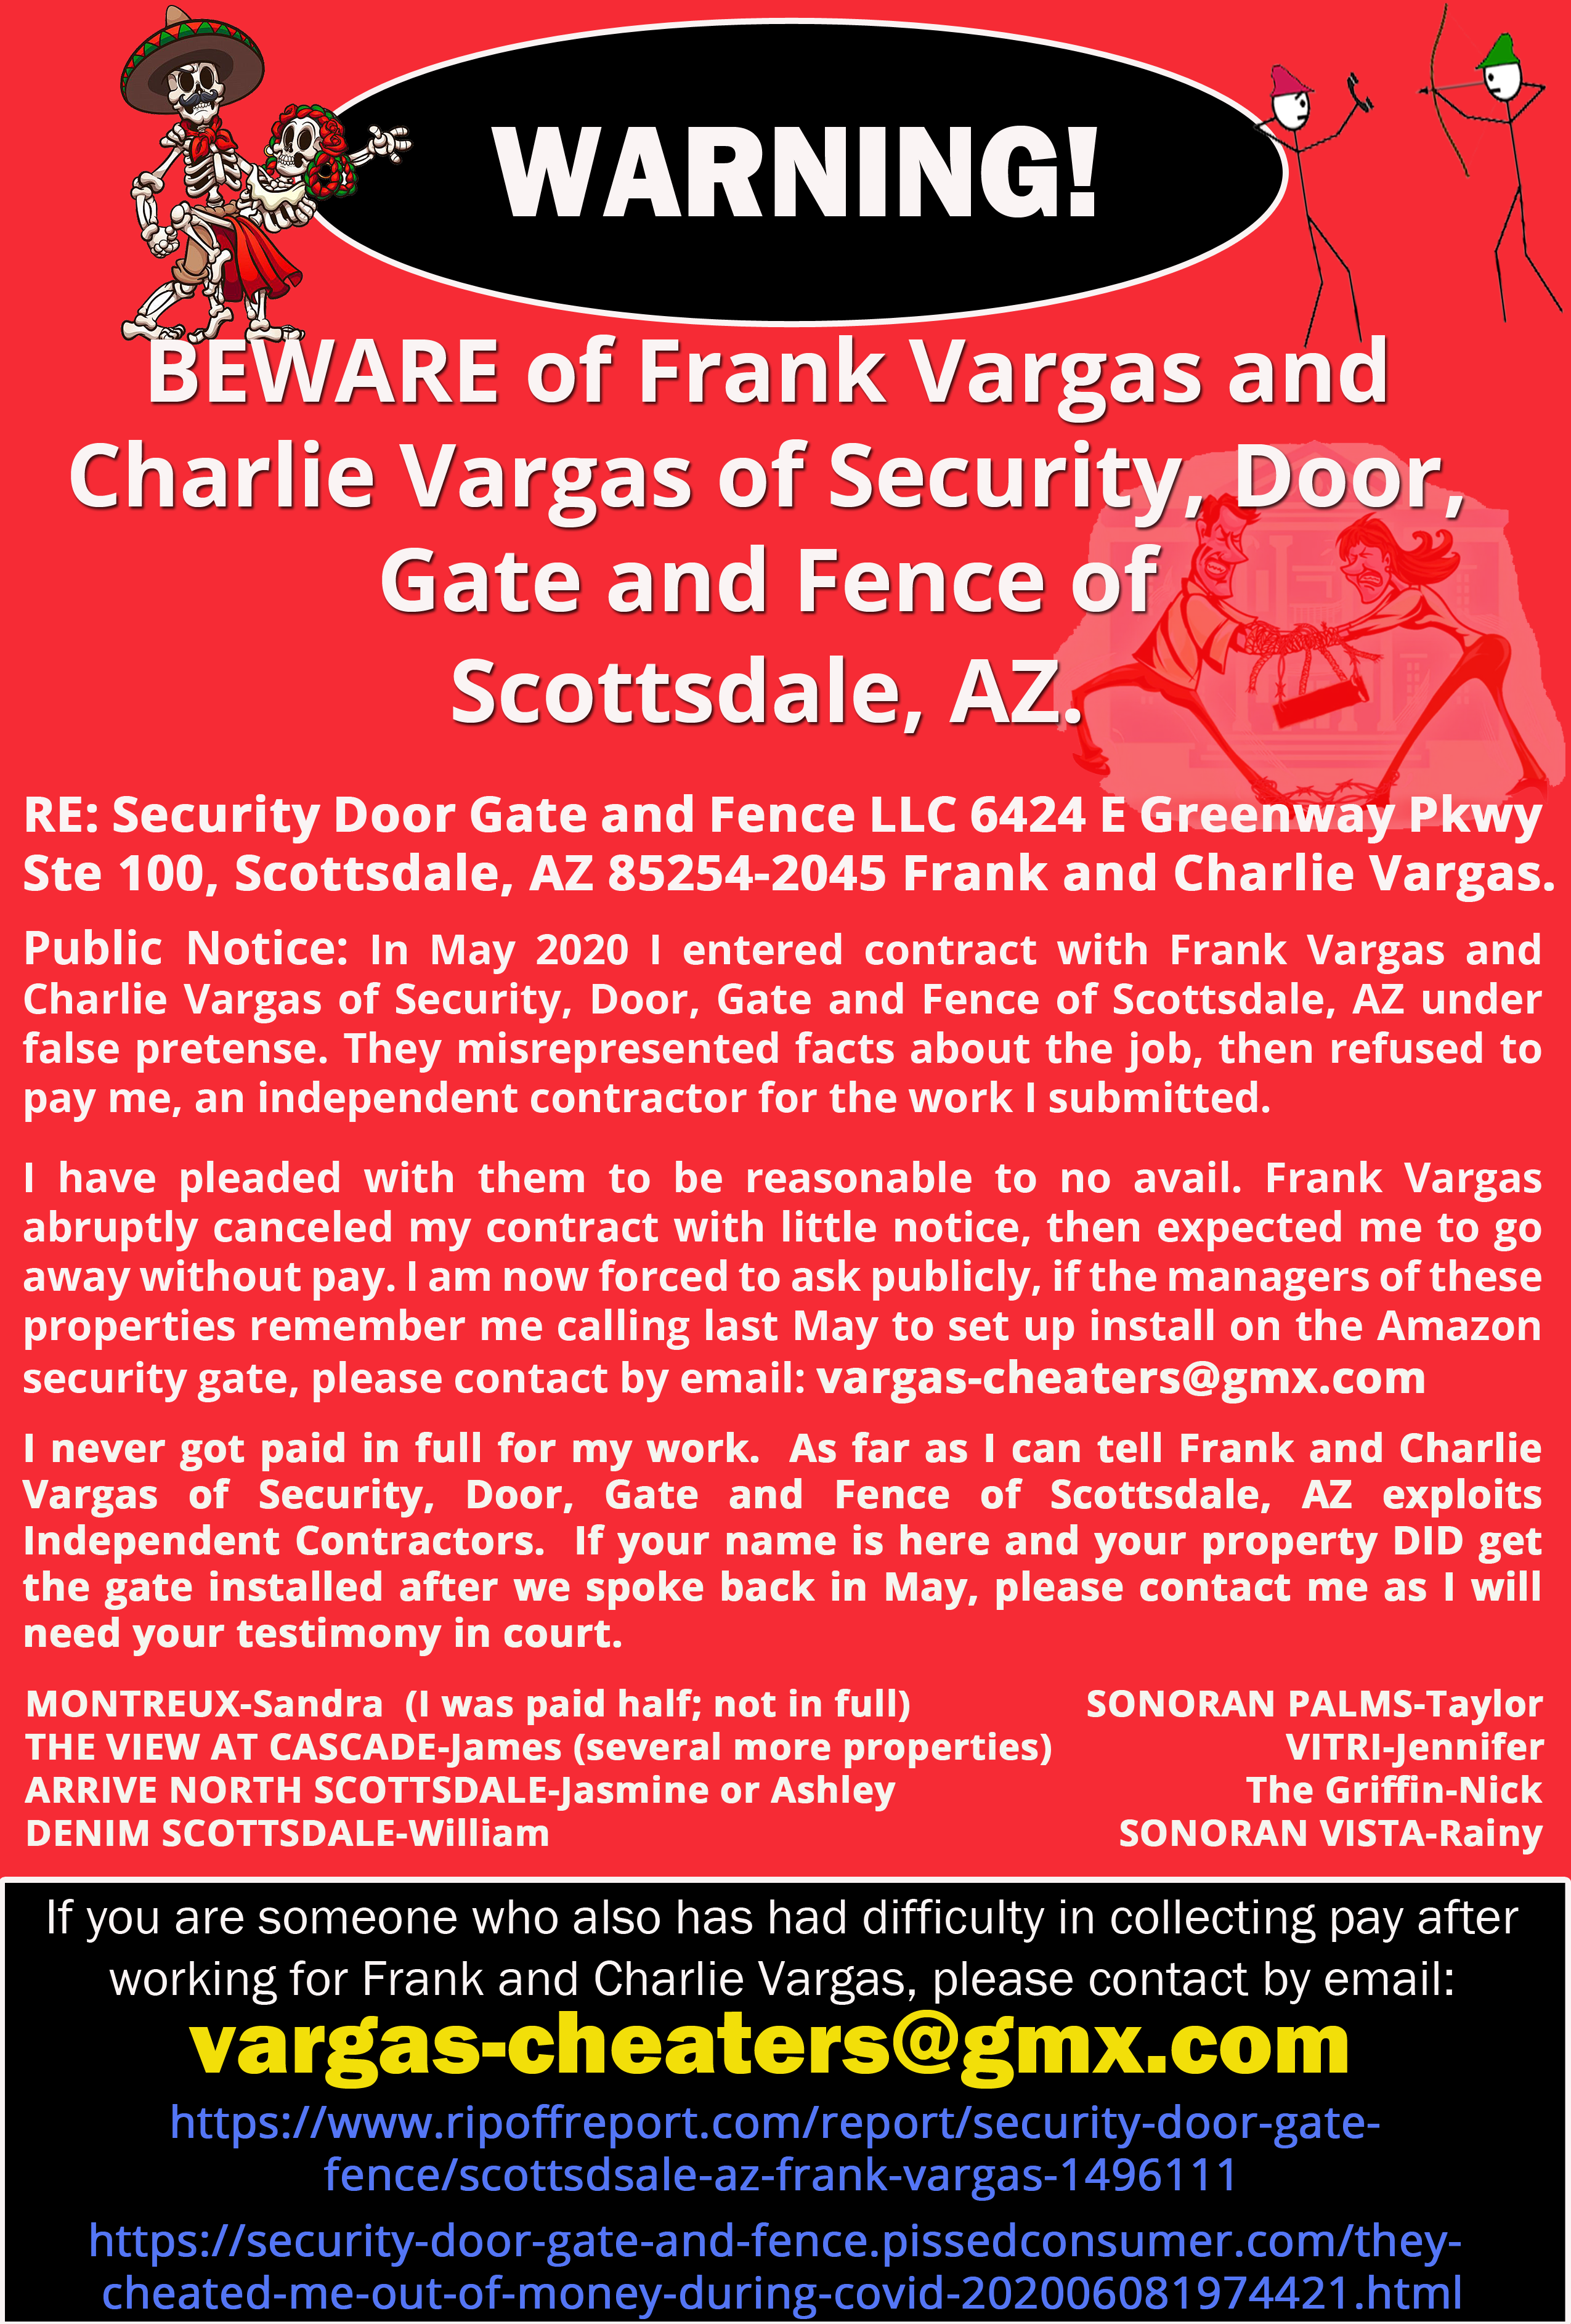 Beware Frank and Charlie Vargas of Security, Door, Gate and Fence of Scottsdale, AZ